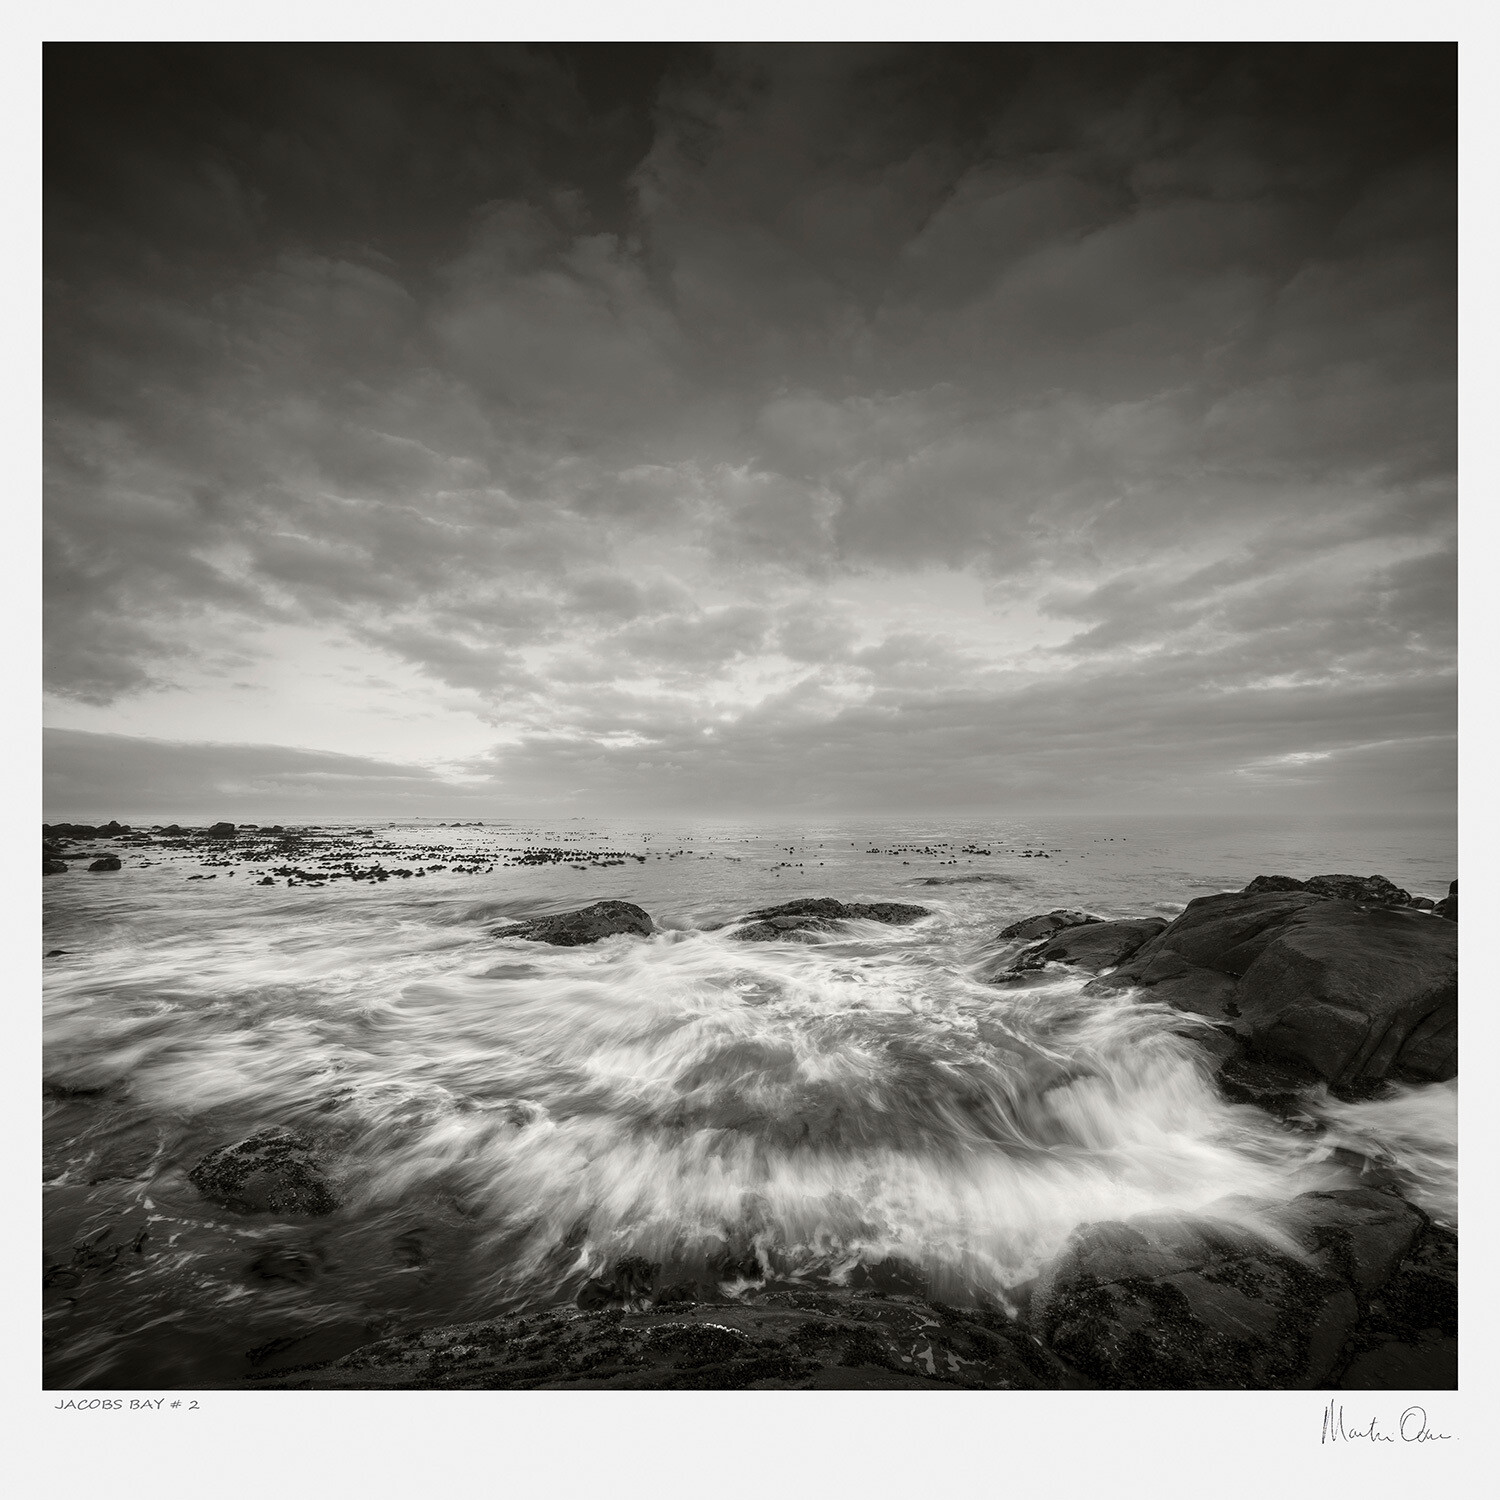 Classic Black and White | Jacobs Bay No.2 | Martin Osner